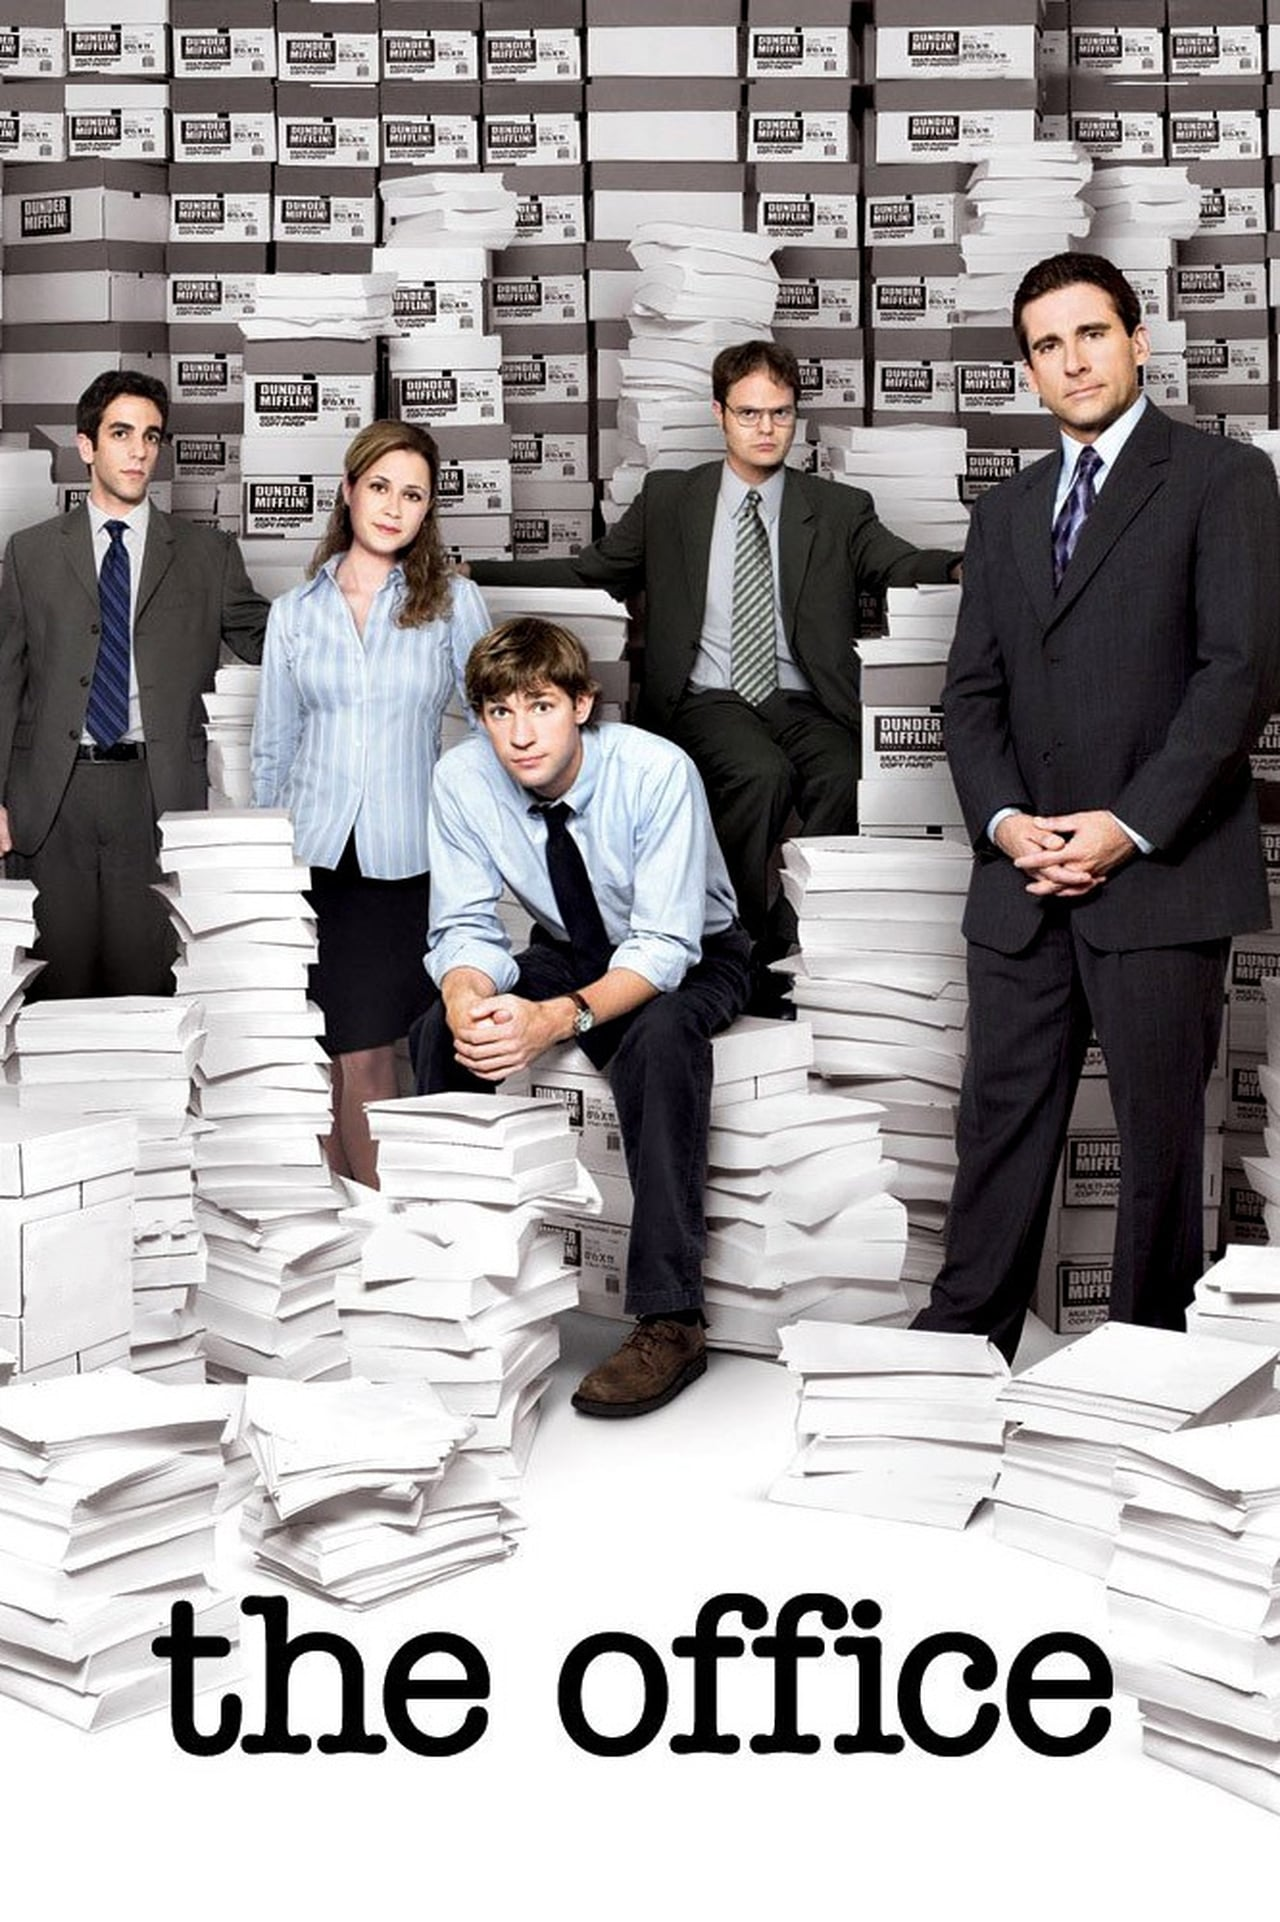 the office s04e11 napisy